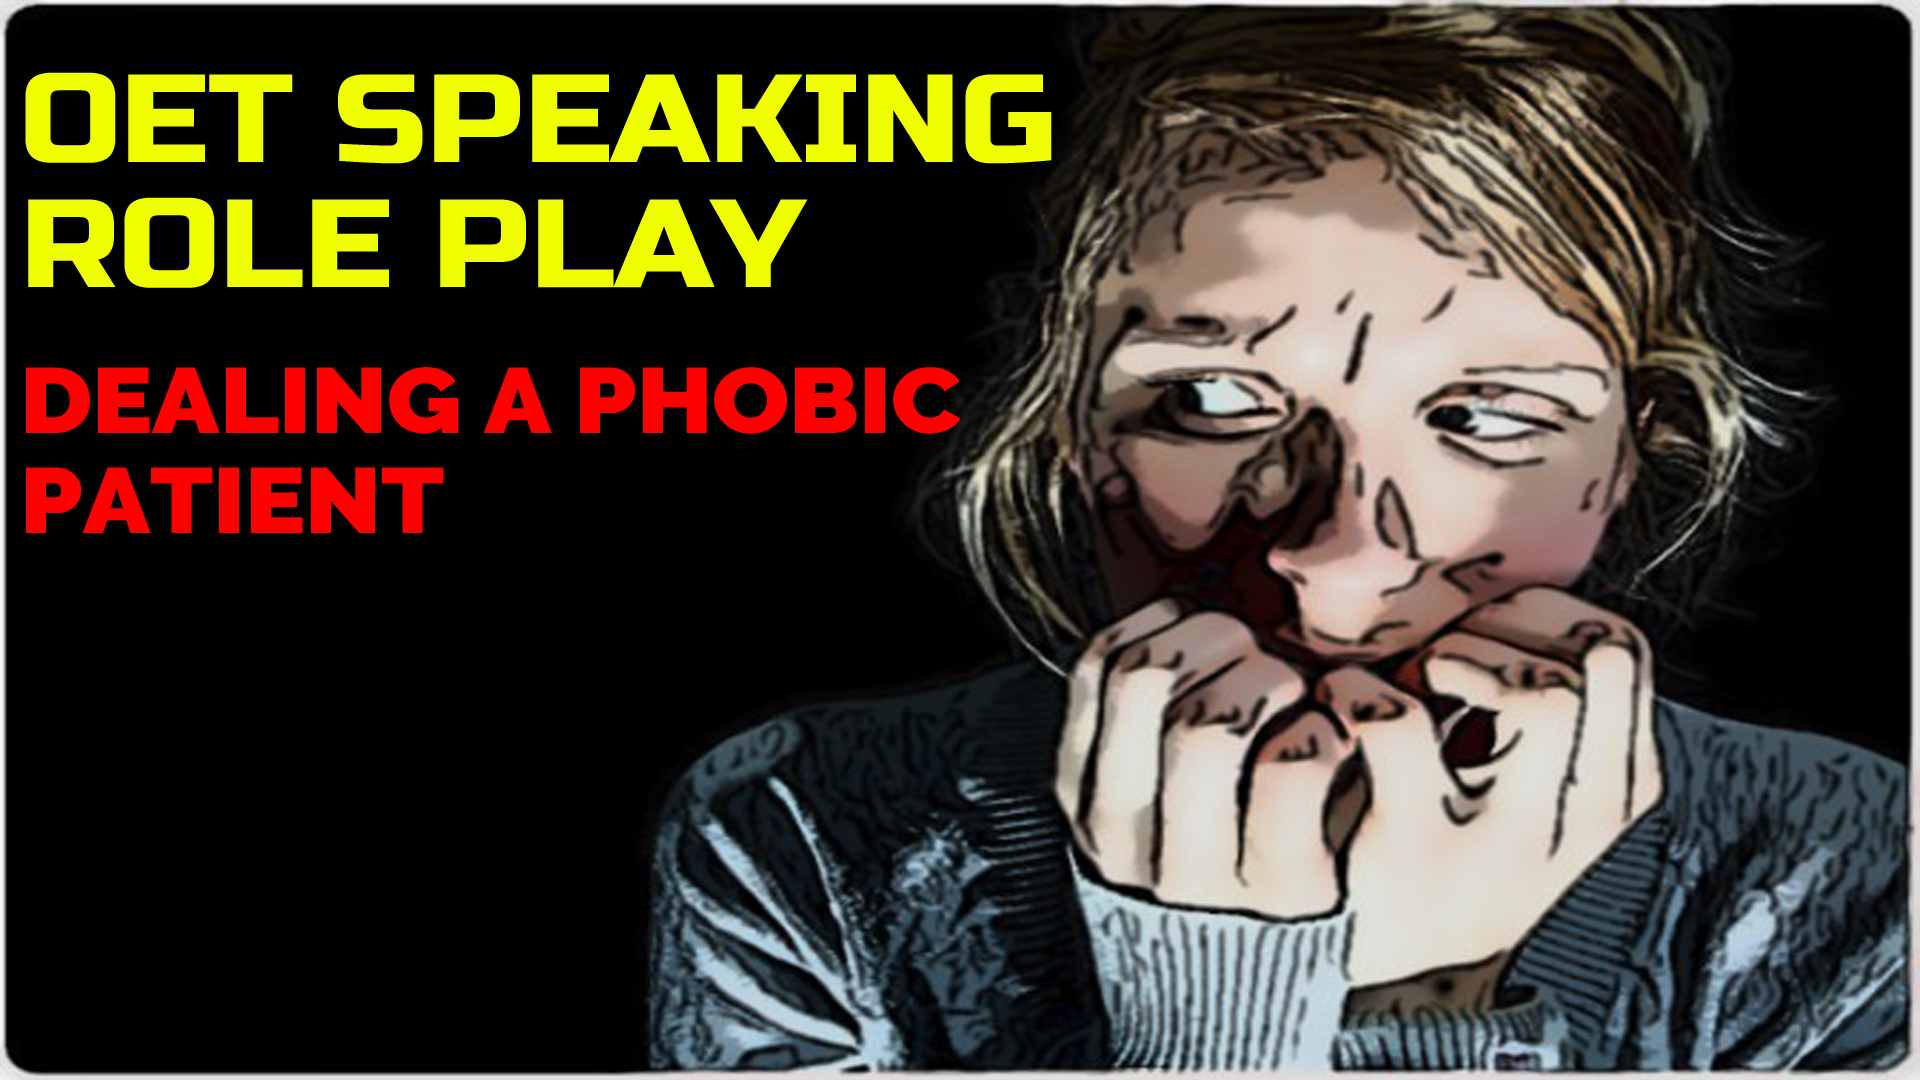 OET SPEAKING ROLE PLAY SAMPLE - DEALING A PHOBIC PATIENT